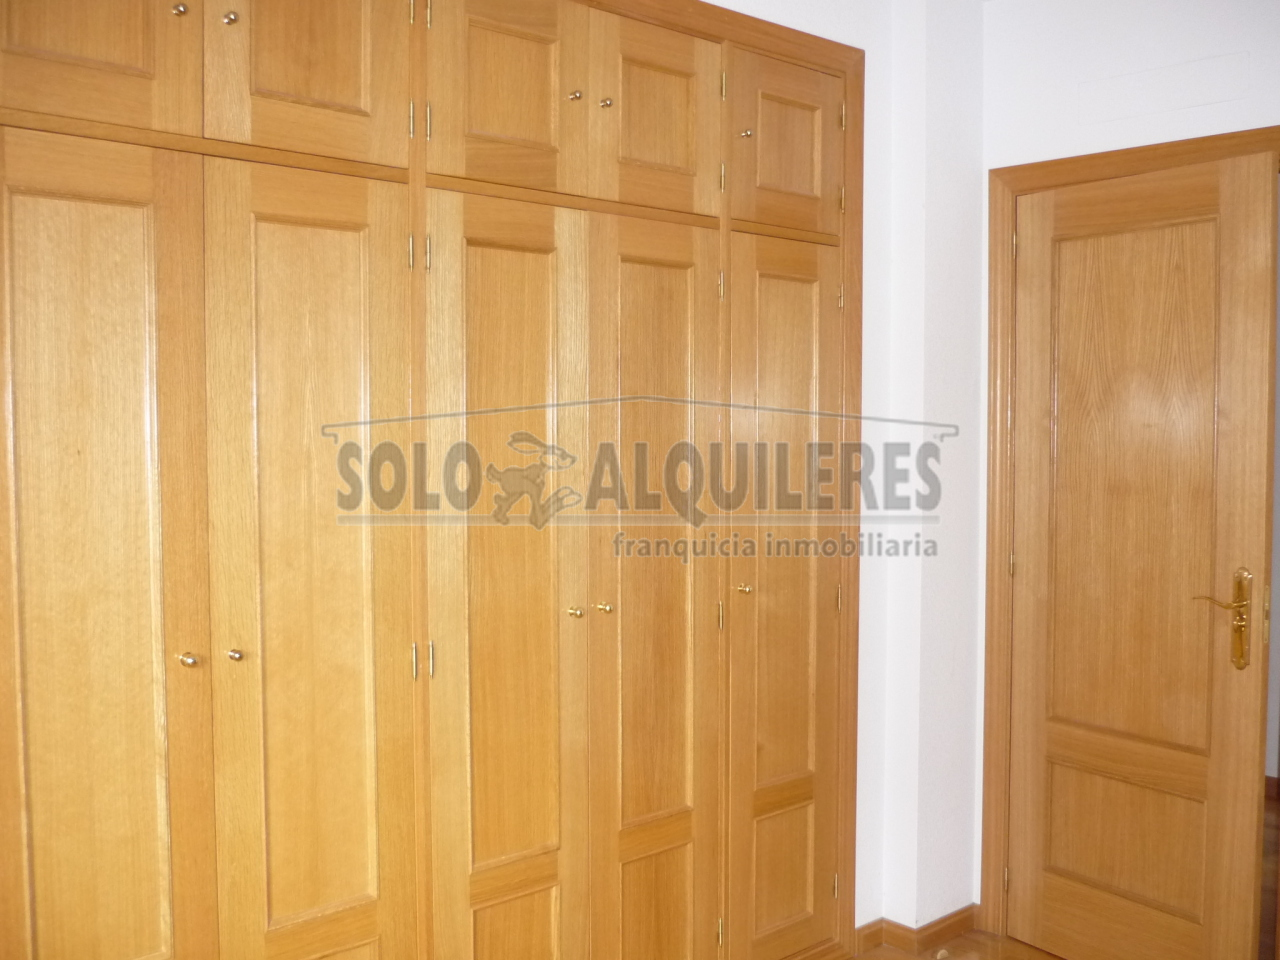 flat-for-rent-in-teruel-madrid